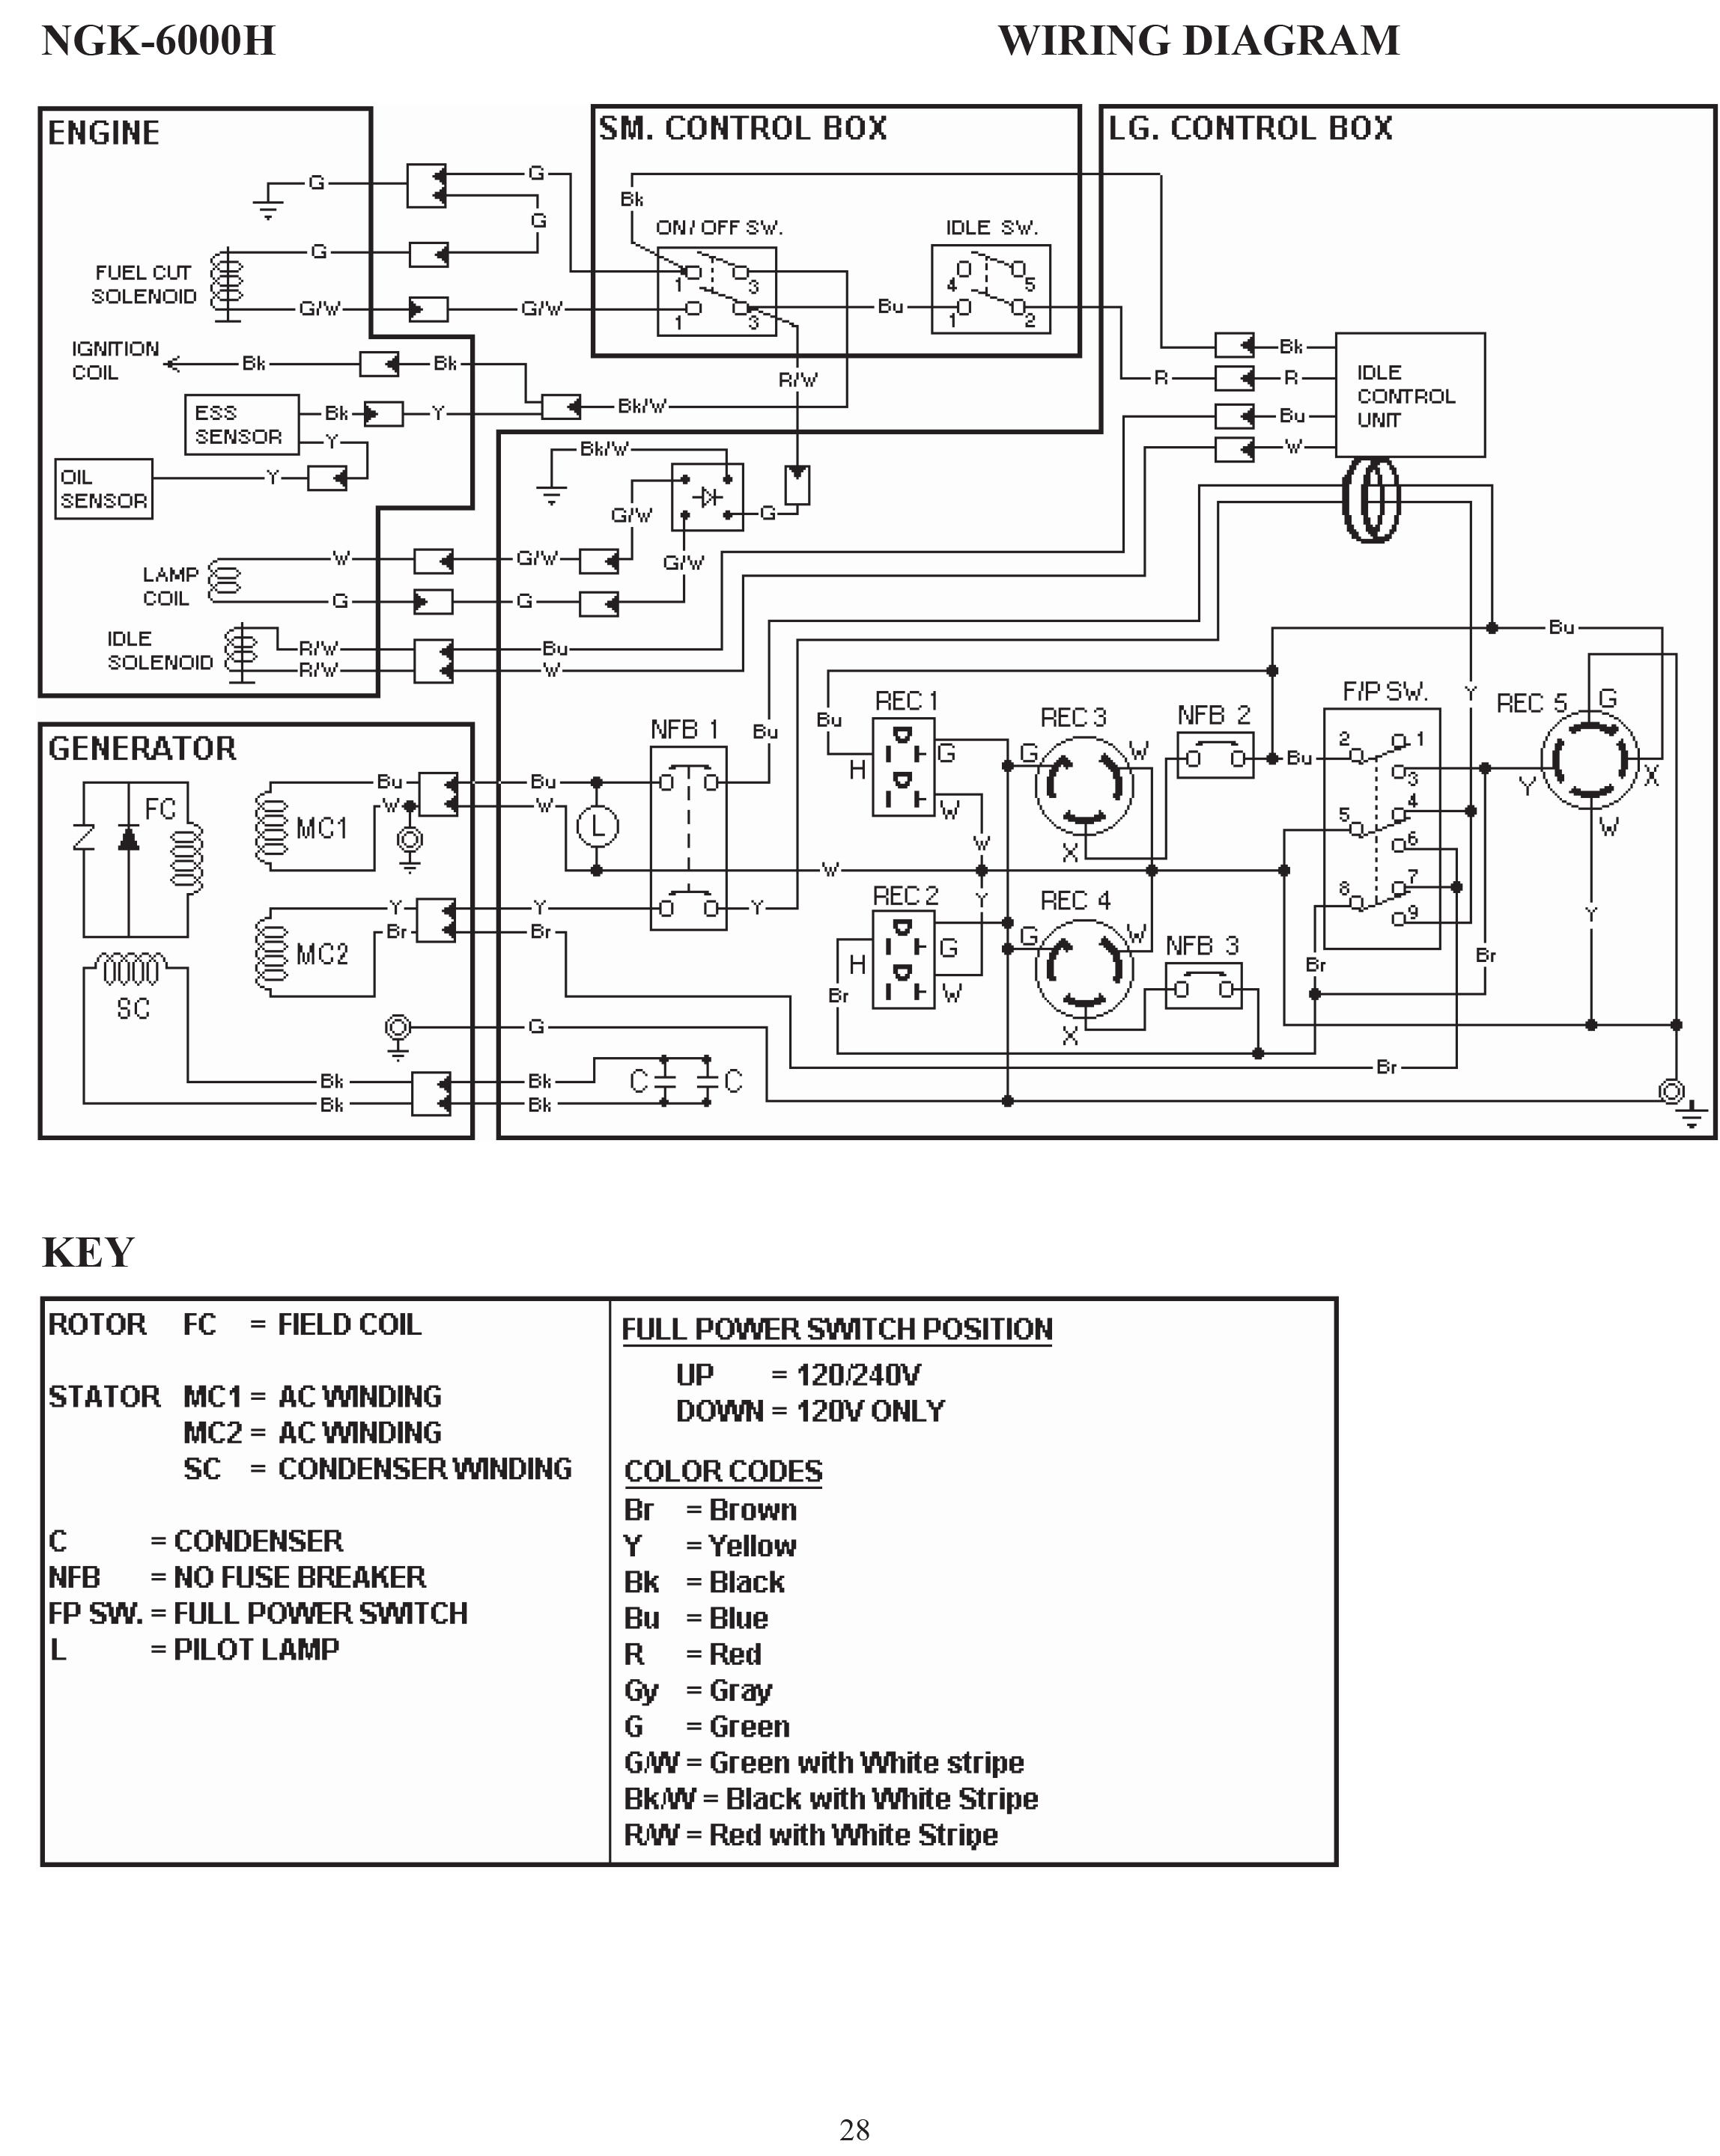 Winnebago Electrical Wiring Diagrams | Manual E-Books - Winnebago Wiring Diagram